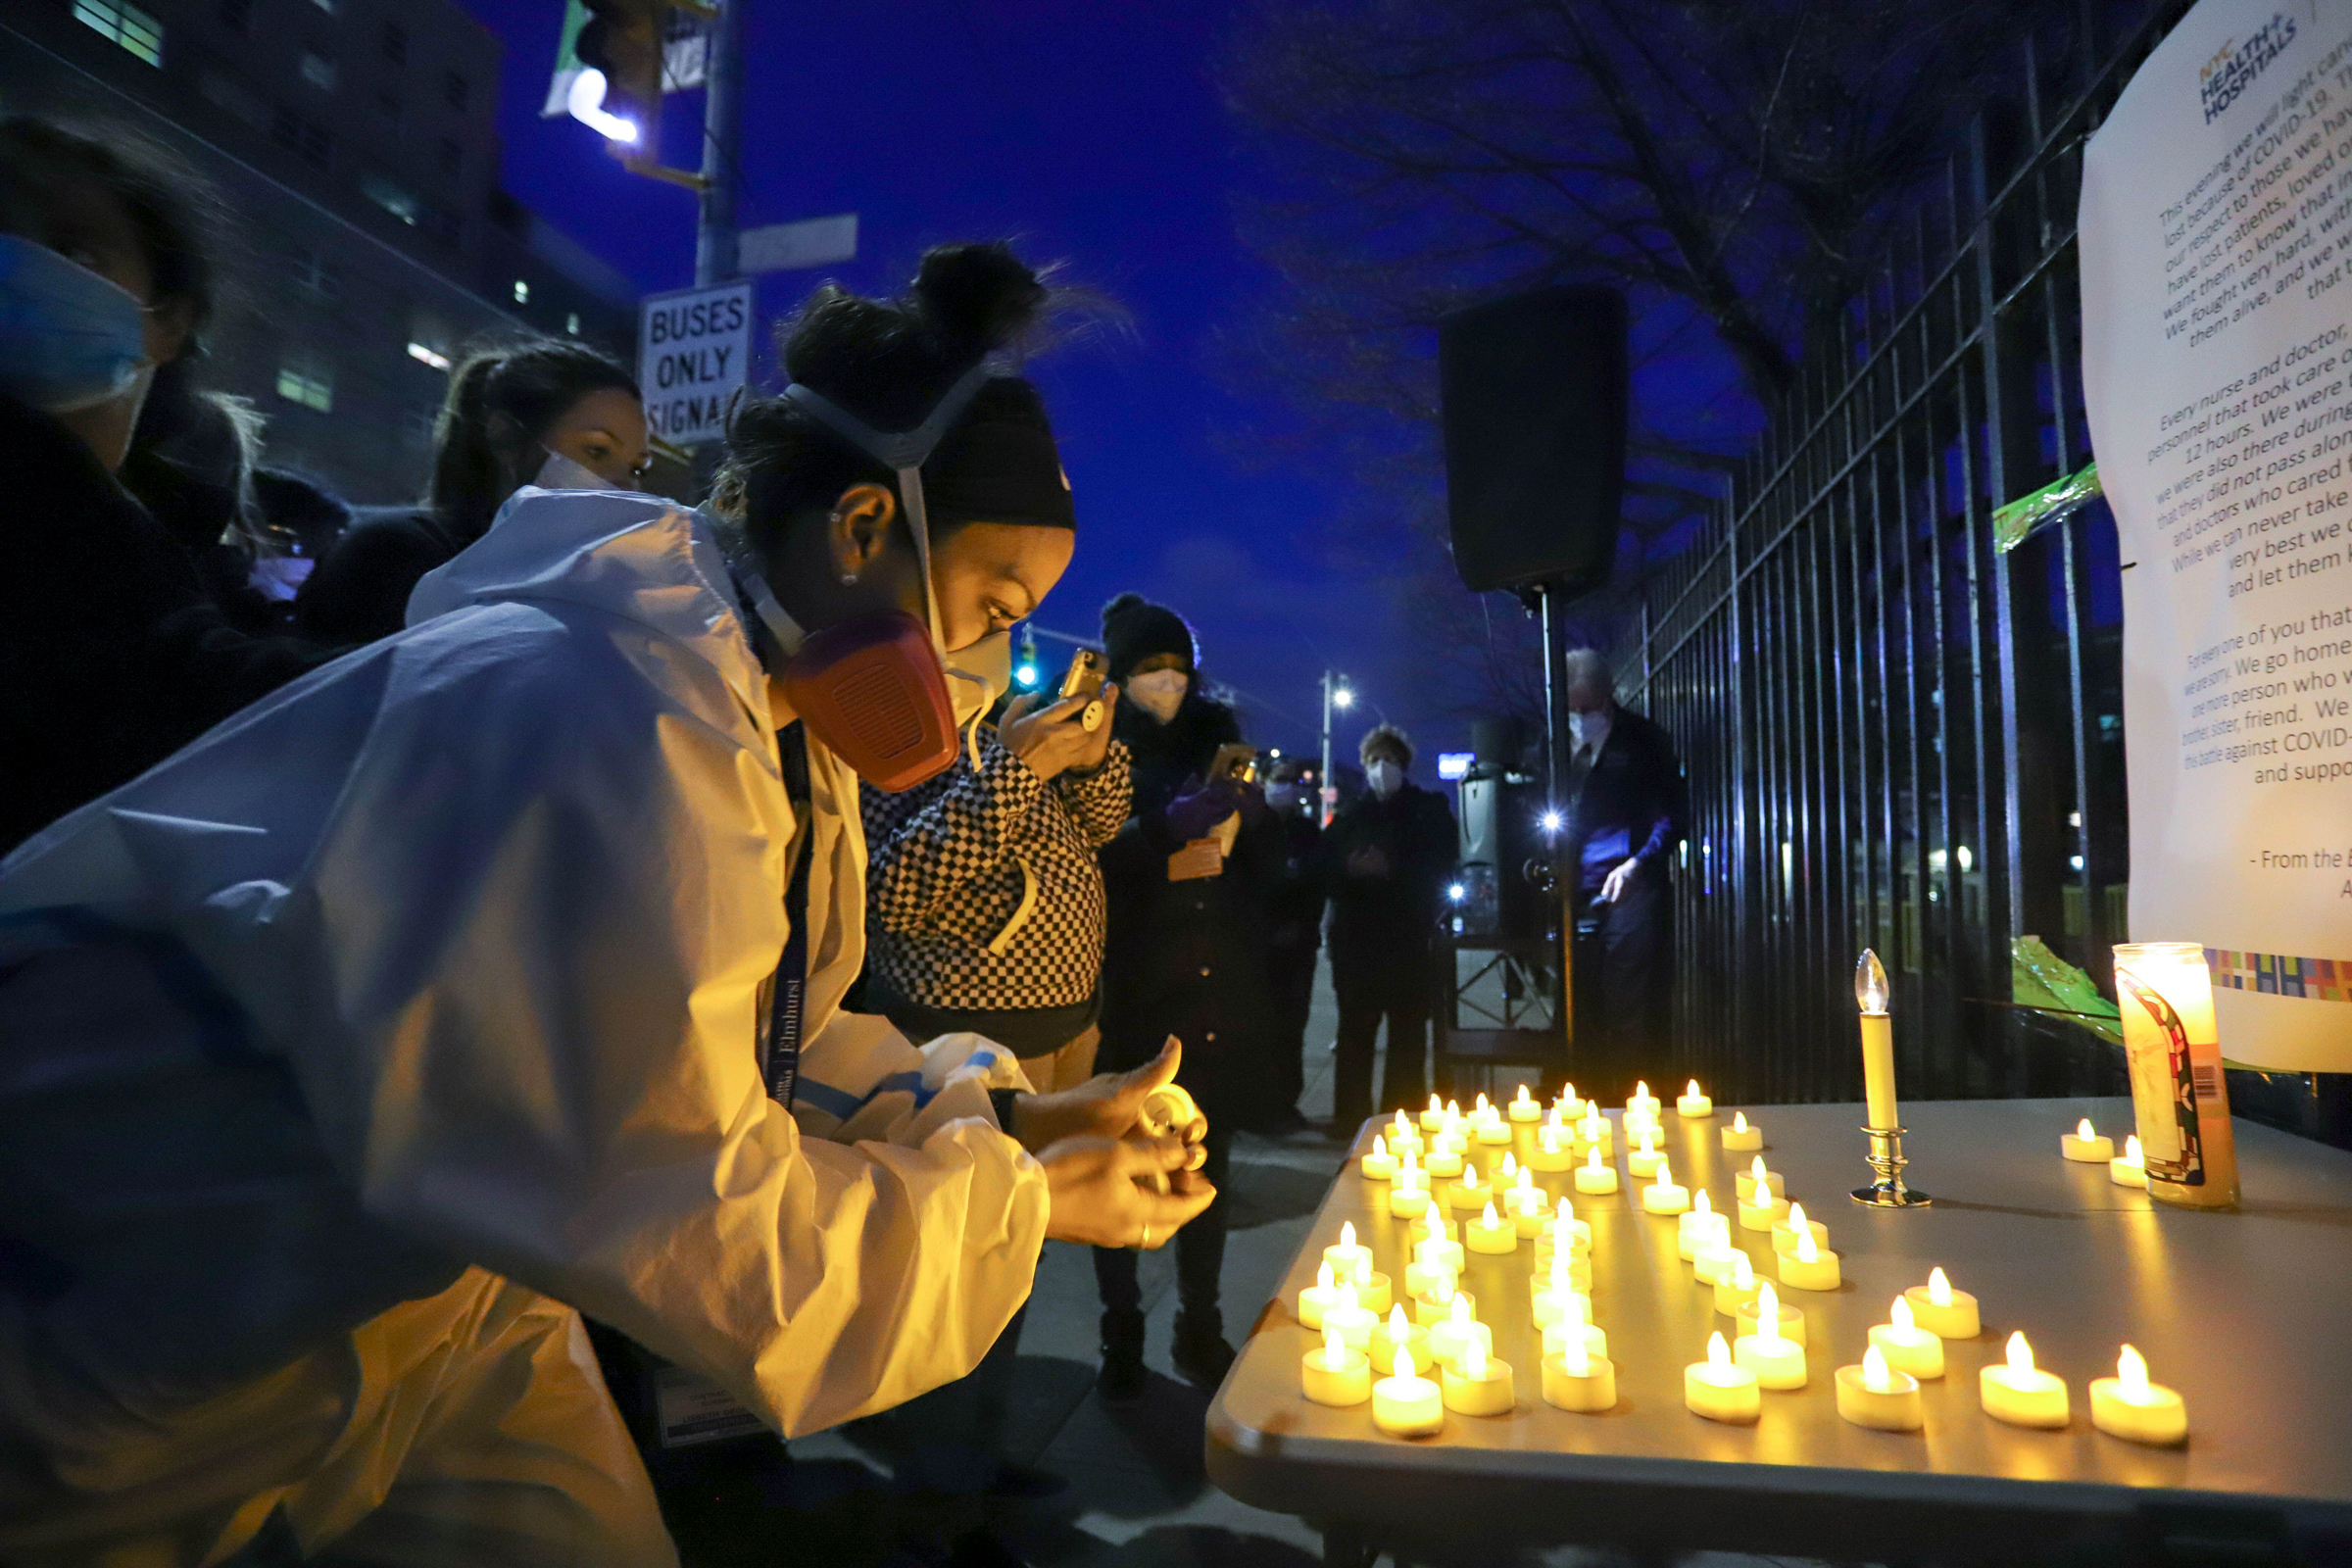 Candlelight vigil at Elmhurst Hospital Center in Queens, N.Y., on April 16, 2020. [William Volcov/ZUMA Wire/Alamy Live News]